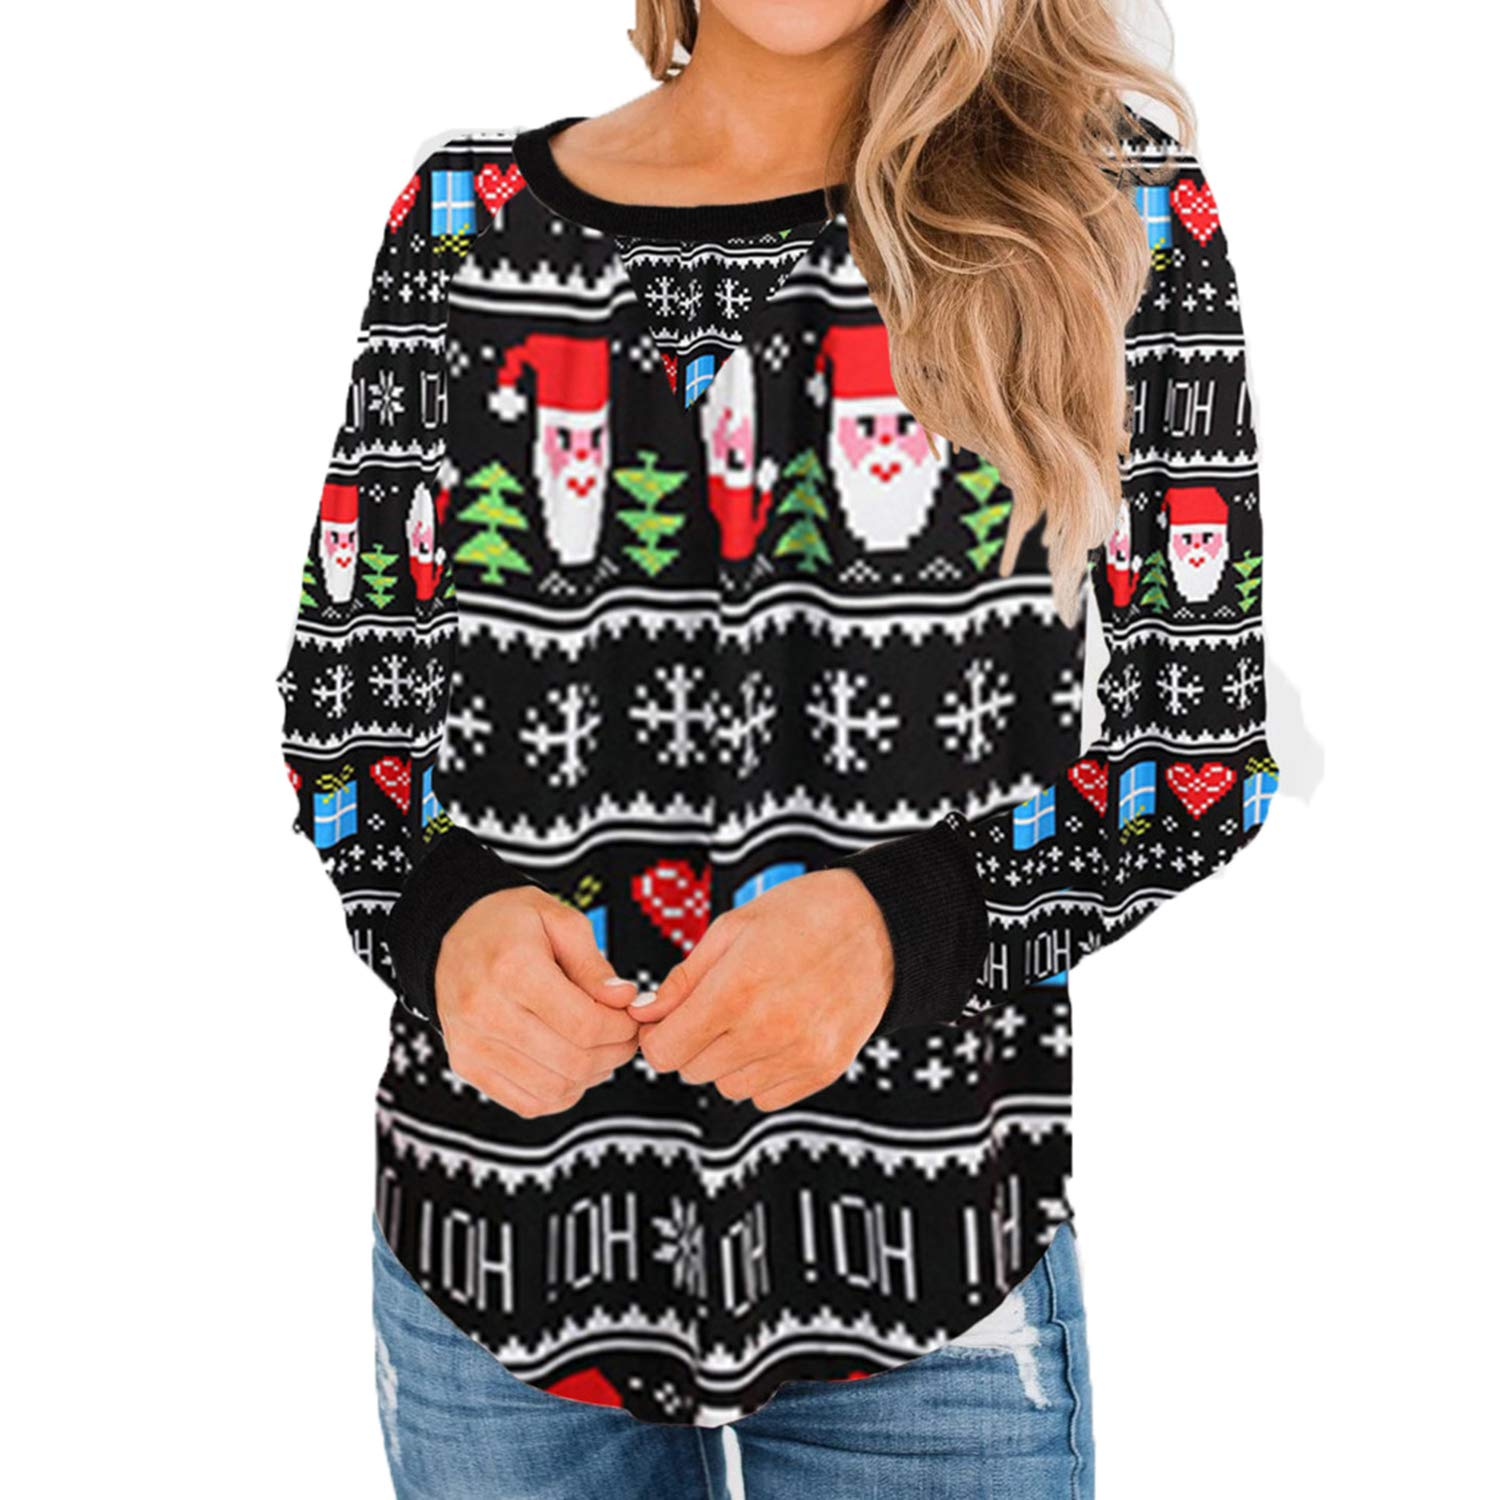 Elegant Women's Christmas Printed Sweater Autumn Ladies Causal O-Neck Long Sleeve Pullover Sweaters Tops Sudadera Mujer New